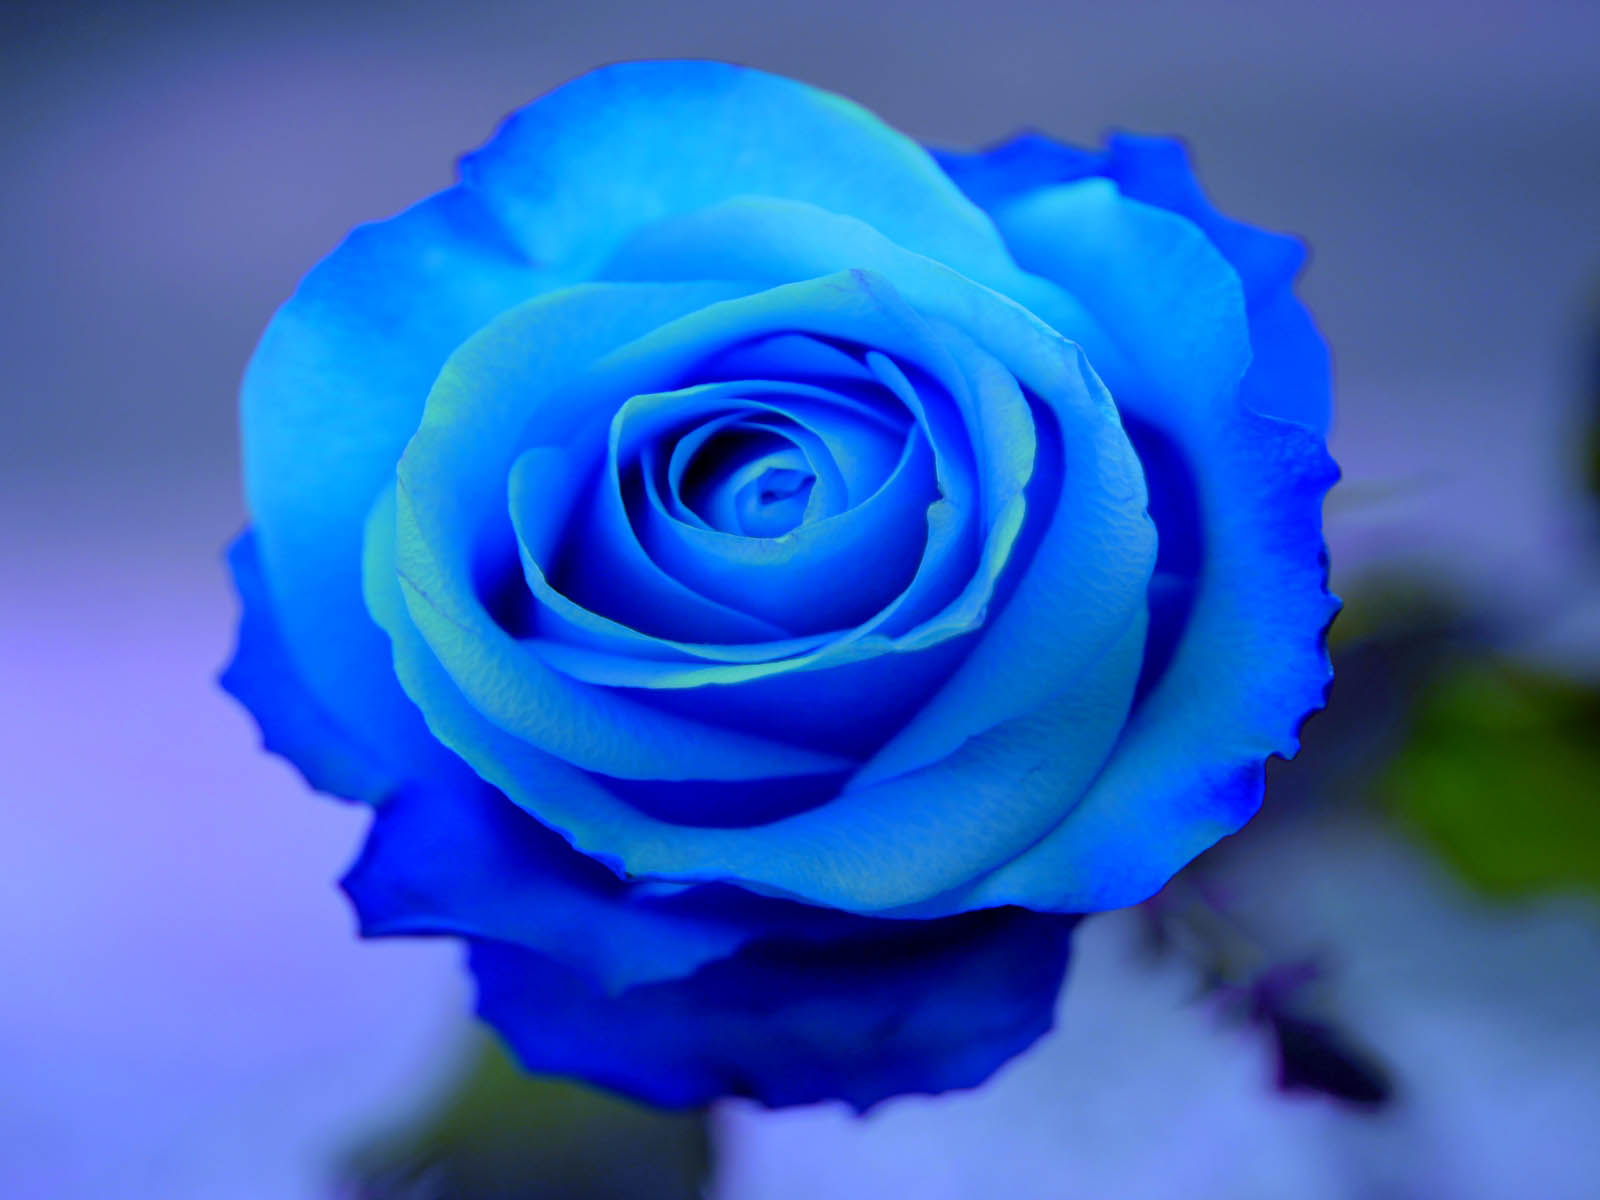 Tag: Blue Rose Wallpapers, Backgrounds, Photos, Pictures,and Images ...